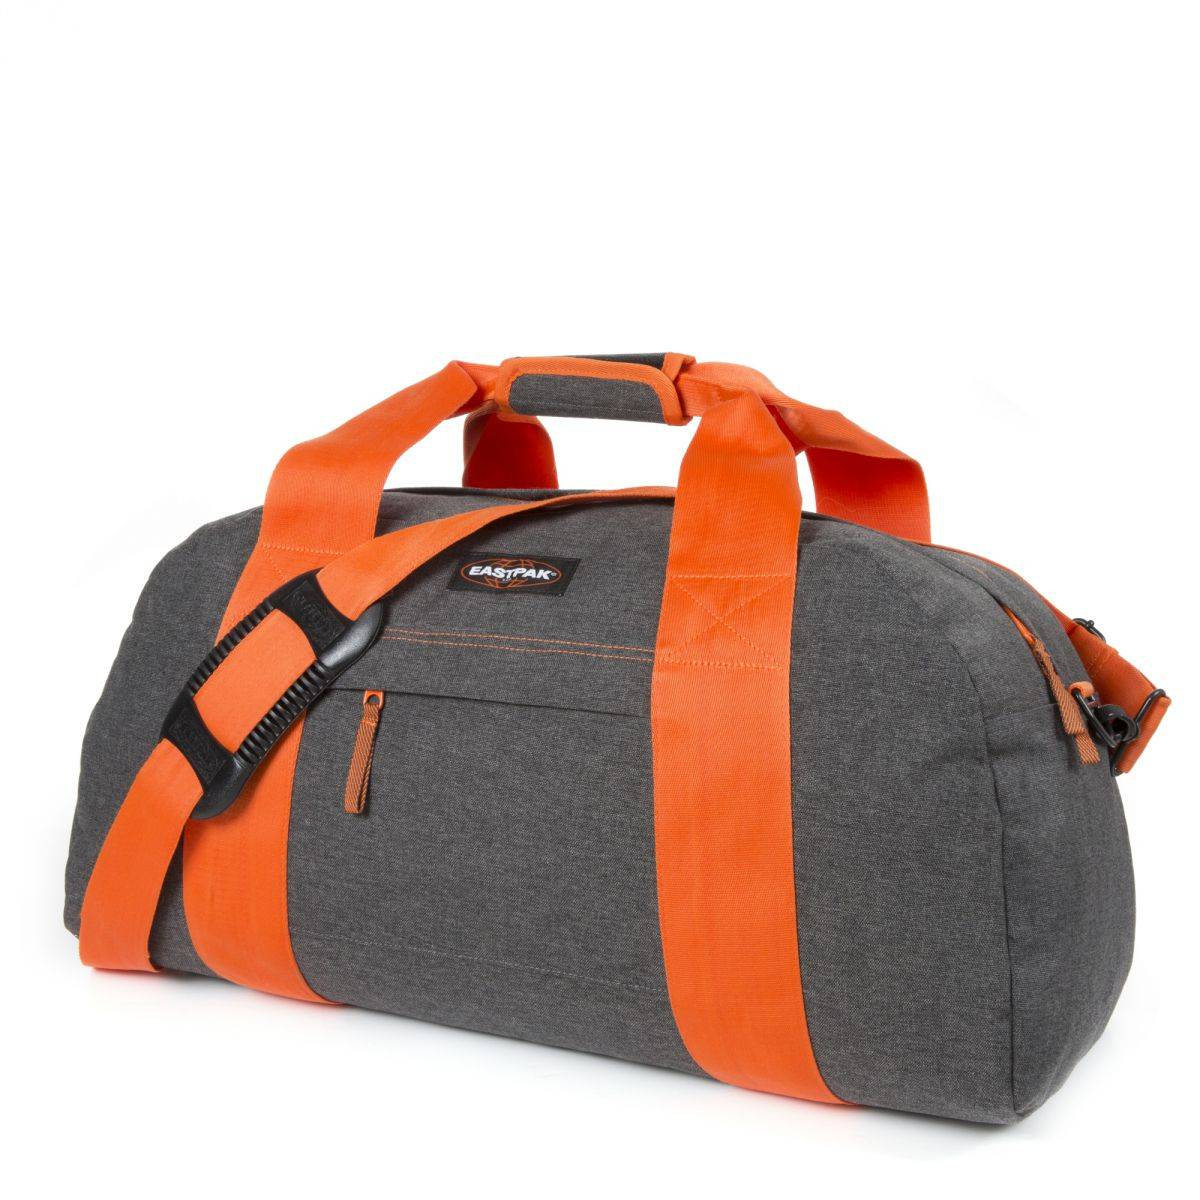 aa35d1688385 ... Eastpak - Sac De Voyage Station (K070) Vue Additionnelle ...